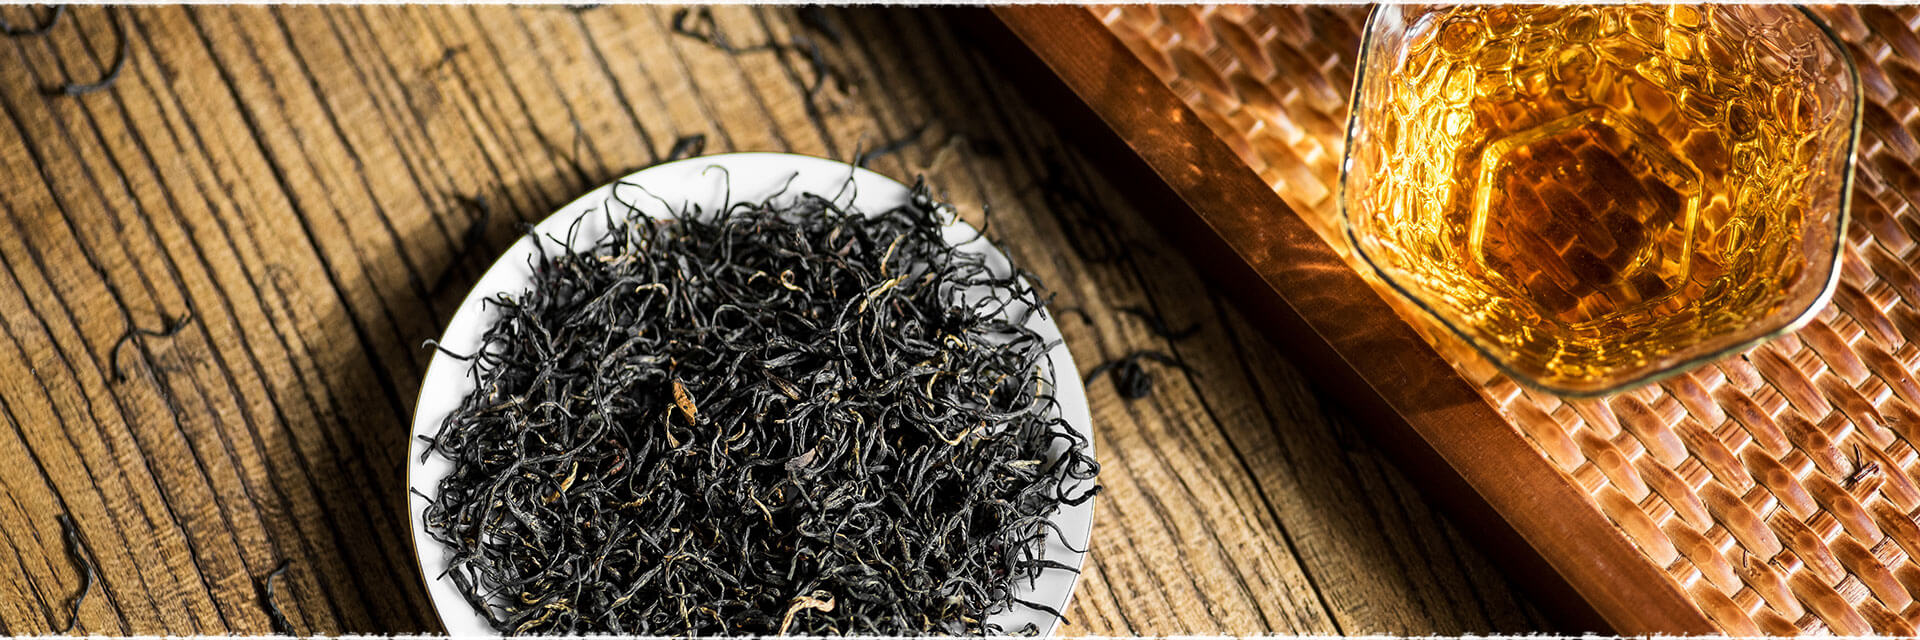 Choosing the Highest Quality Keemun Chinese Black Tea